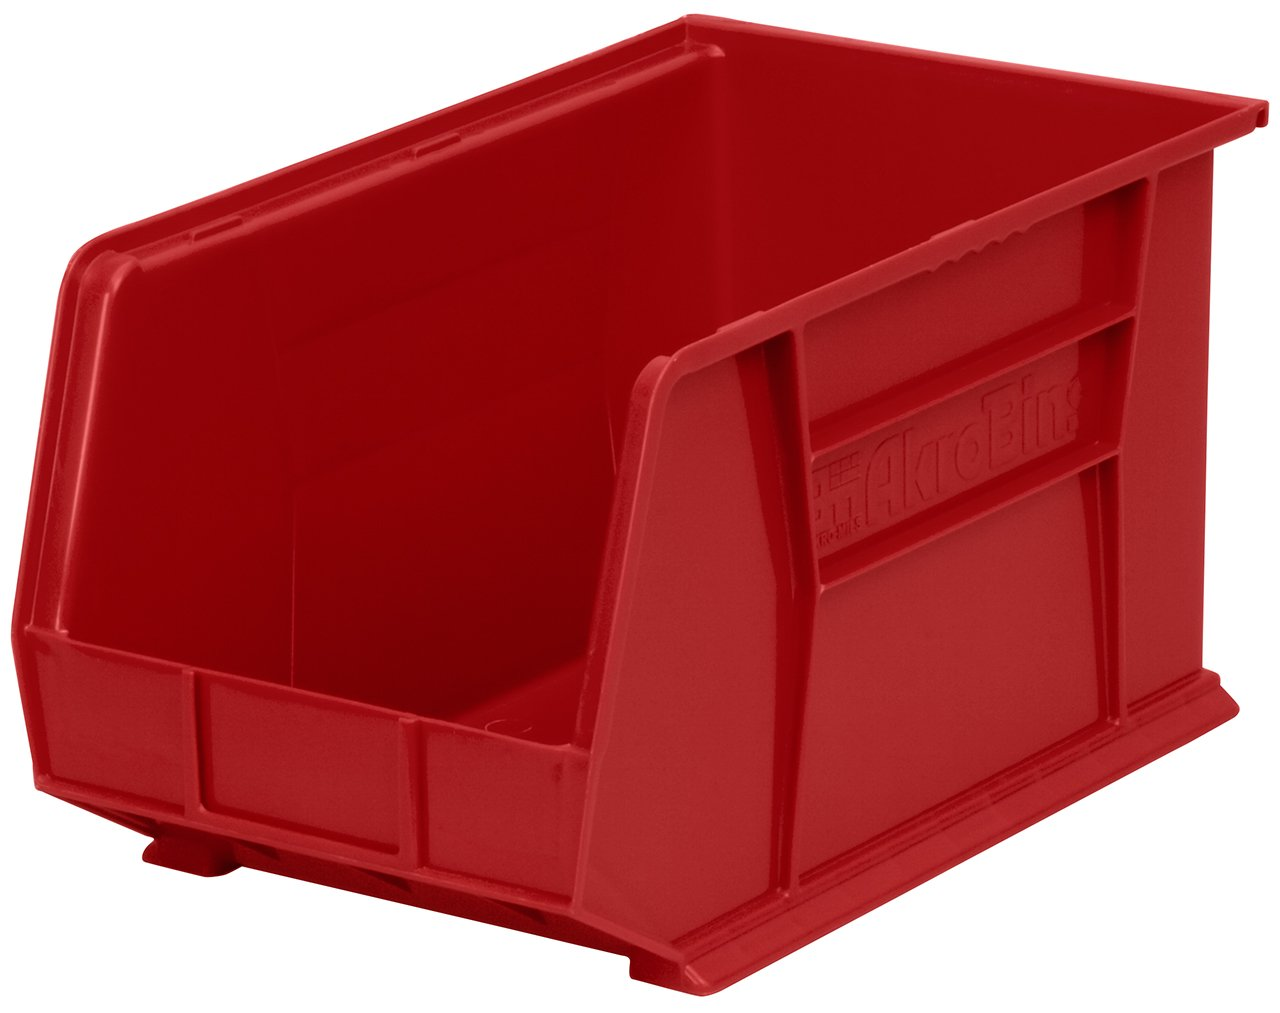 Akro-Mils 30260 Plastic Storage Stacking Hanging Akro Bin, 18-Inch by 11-Inch by 10-Inch, Red, Case of 6